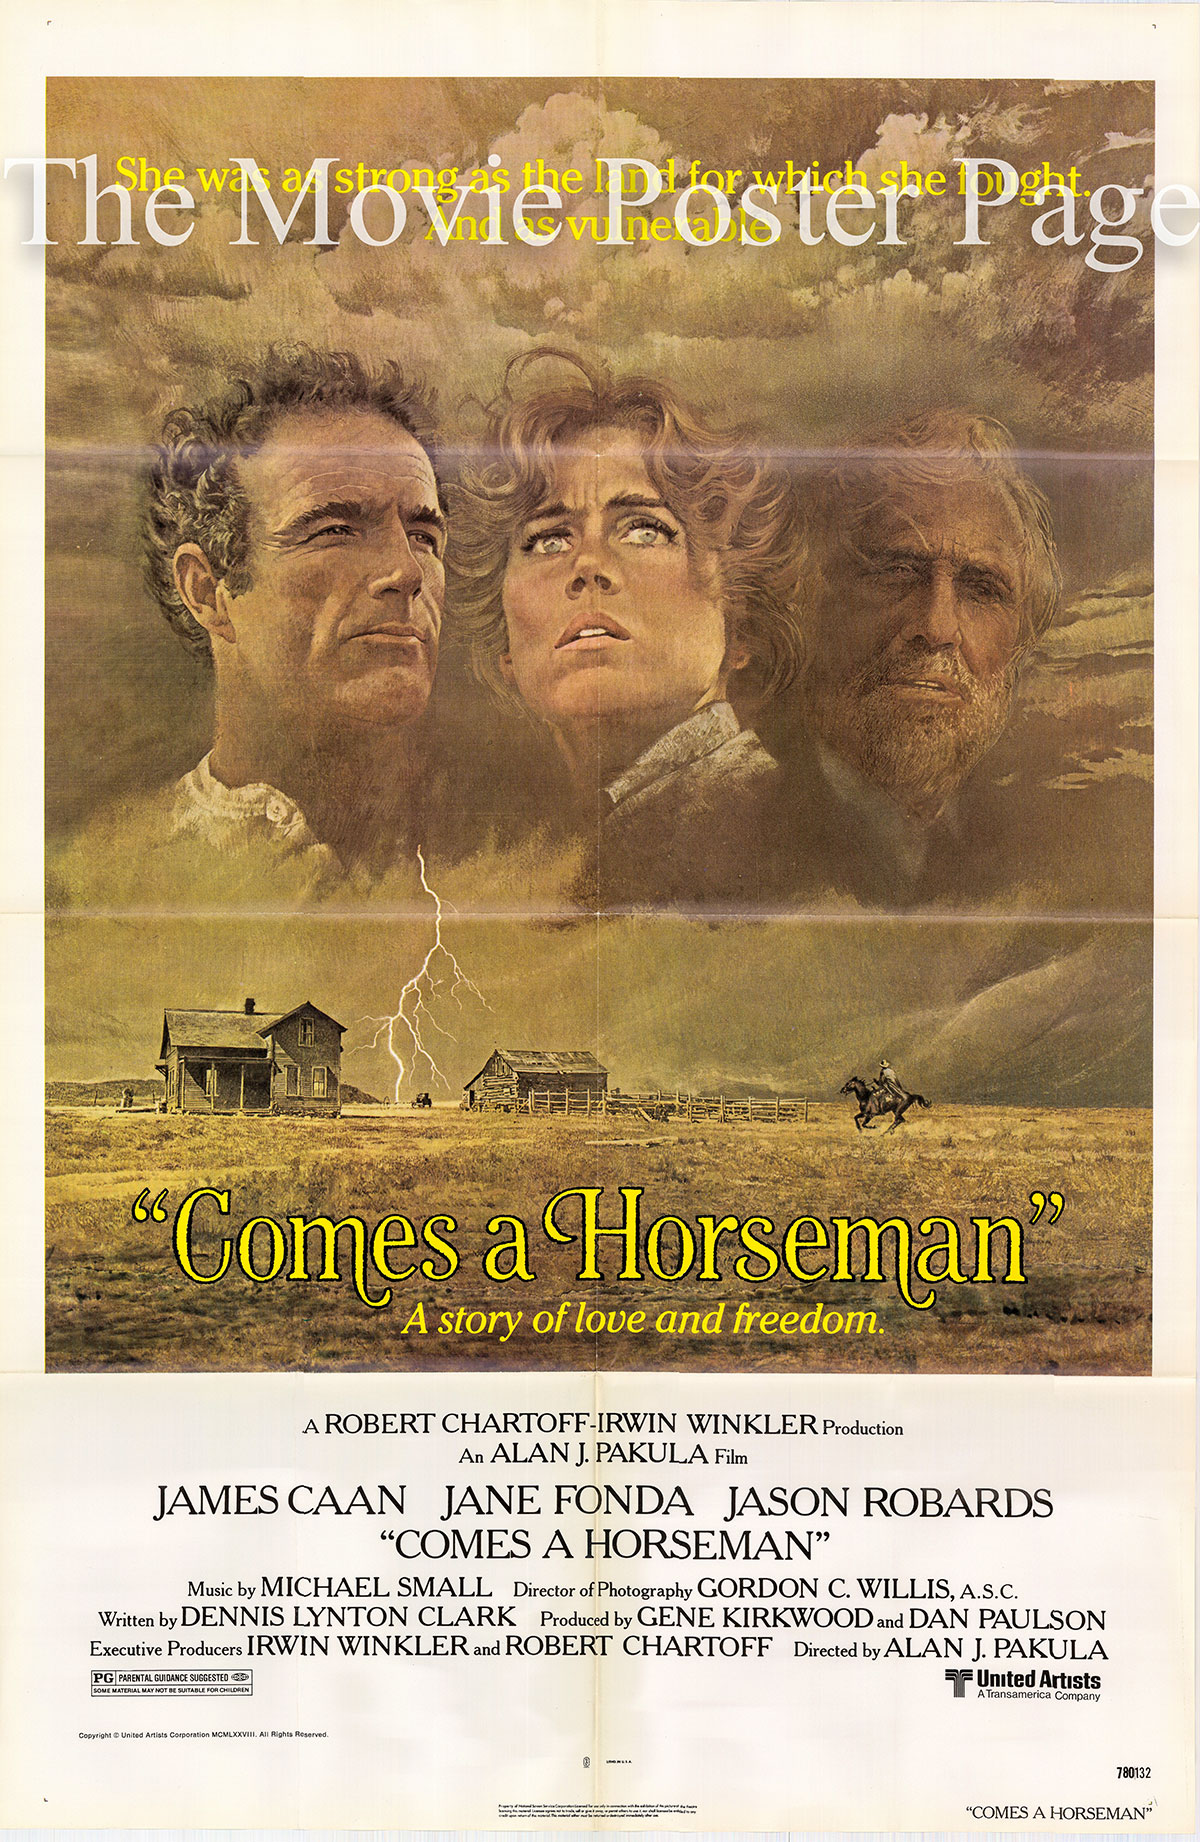 Pictured is a US one-sheet poster for the 1978 Alan J. Pakula film Comes a Horseman starring James Caan.